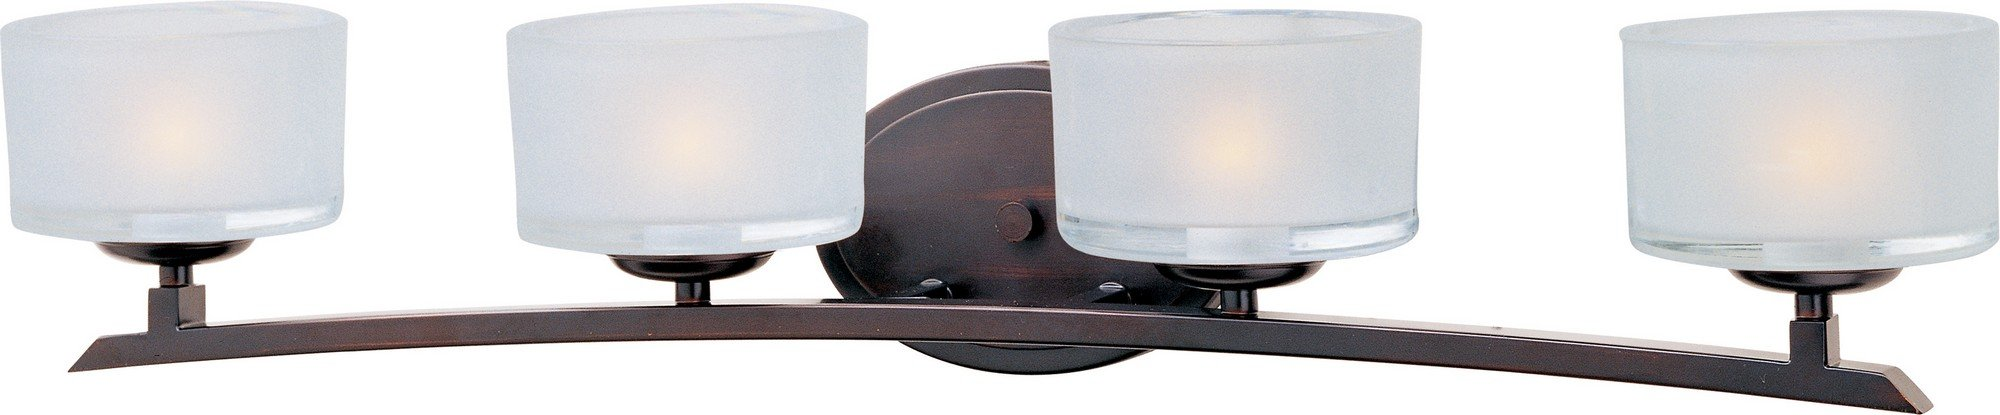 Maxim 19054FTOI Elle 4-Light Bath Vanity, Oil Rubbed Bronze Finish, Frosted Glass, G9 Frost Xenon Bulb , 13W Max., Wet Safety Rating, 2700K Color Temp, Glass Shade Material, 900 Rated Lumens